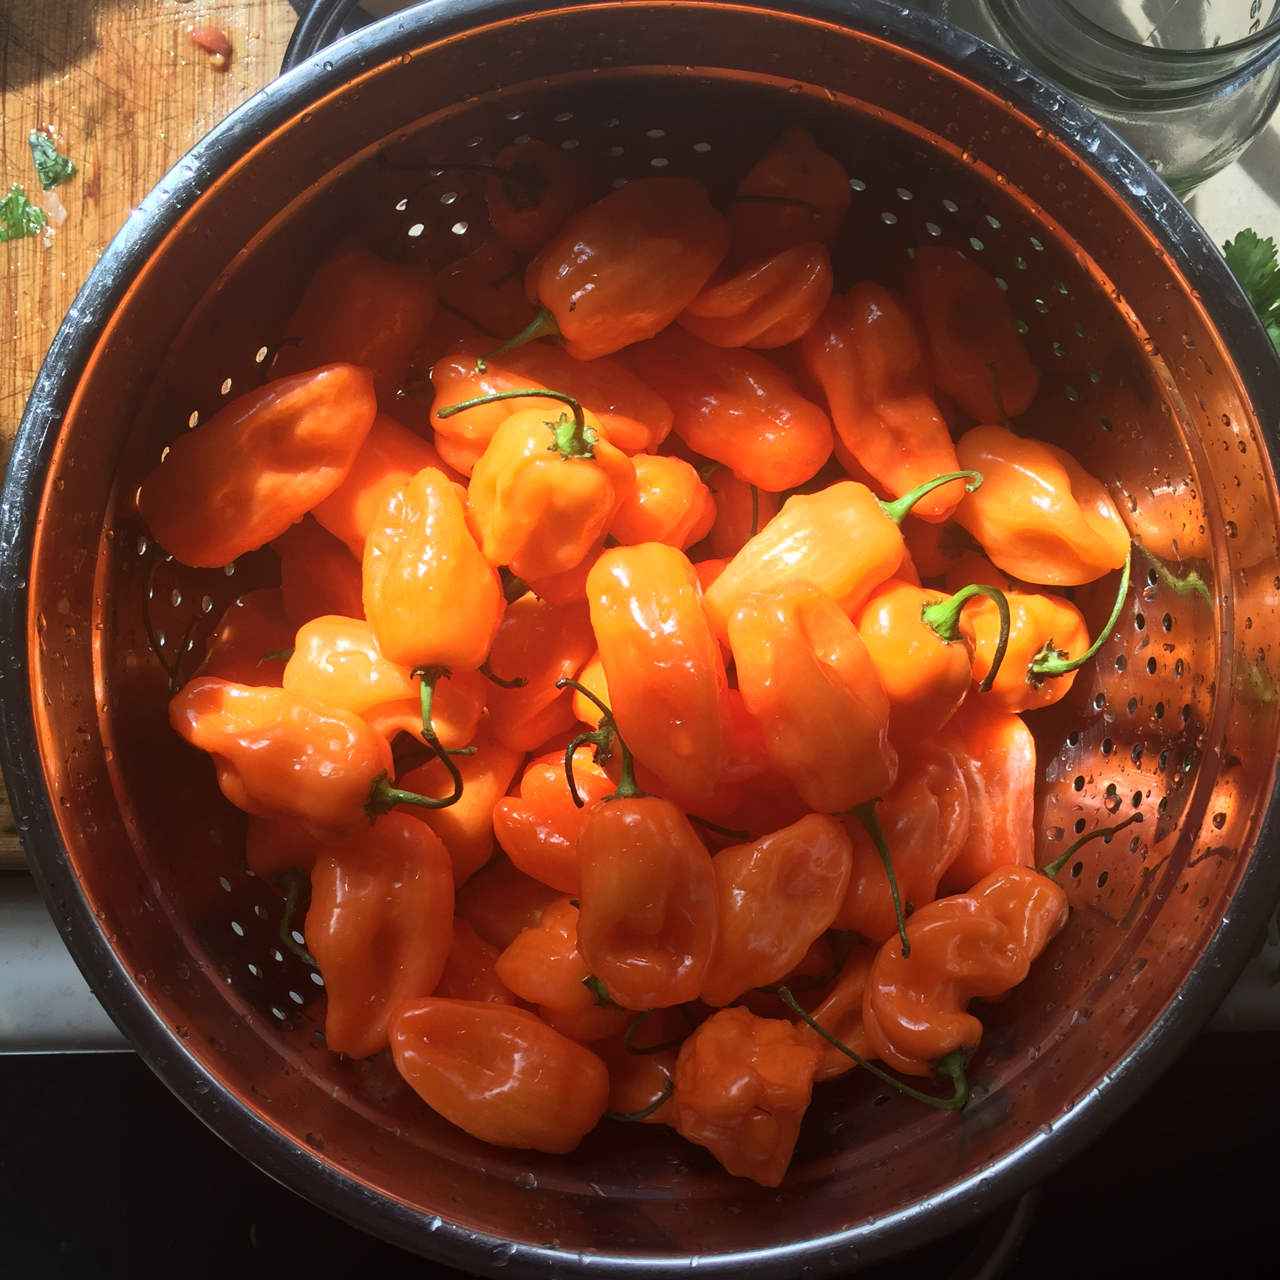 Habanero washing